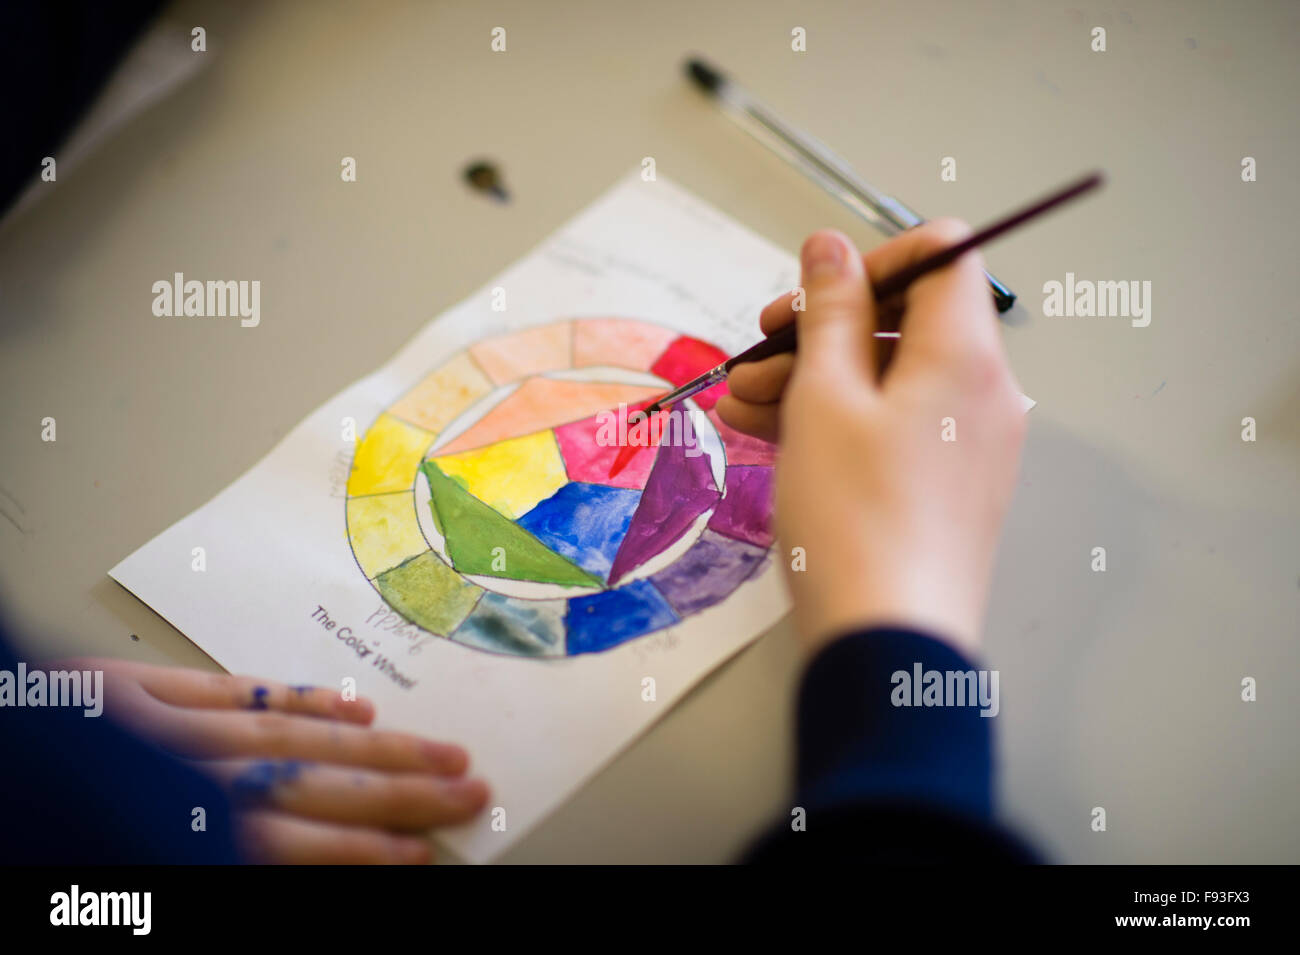 Secondary education Wales UK: pupils painting in an art class lesson - Stock Image